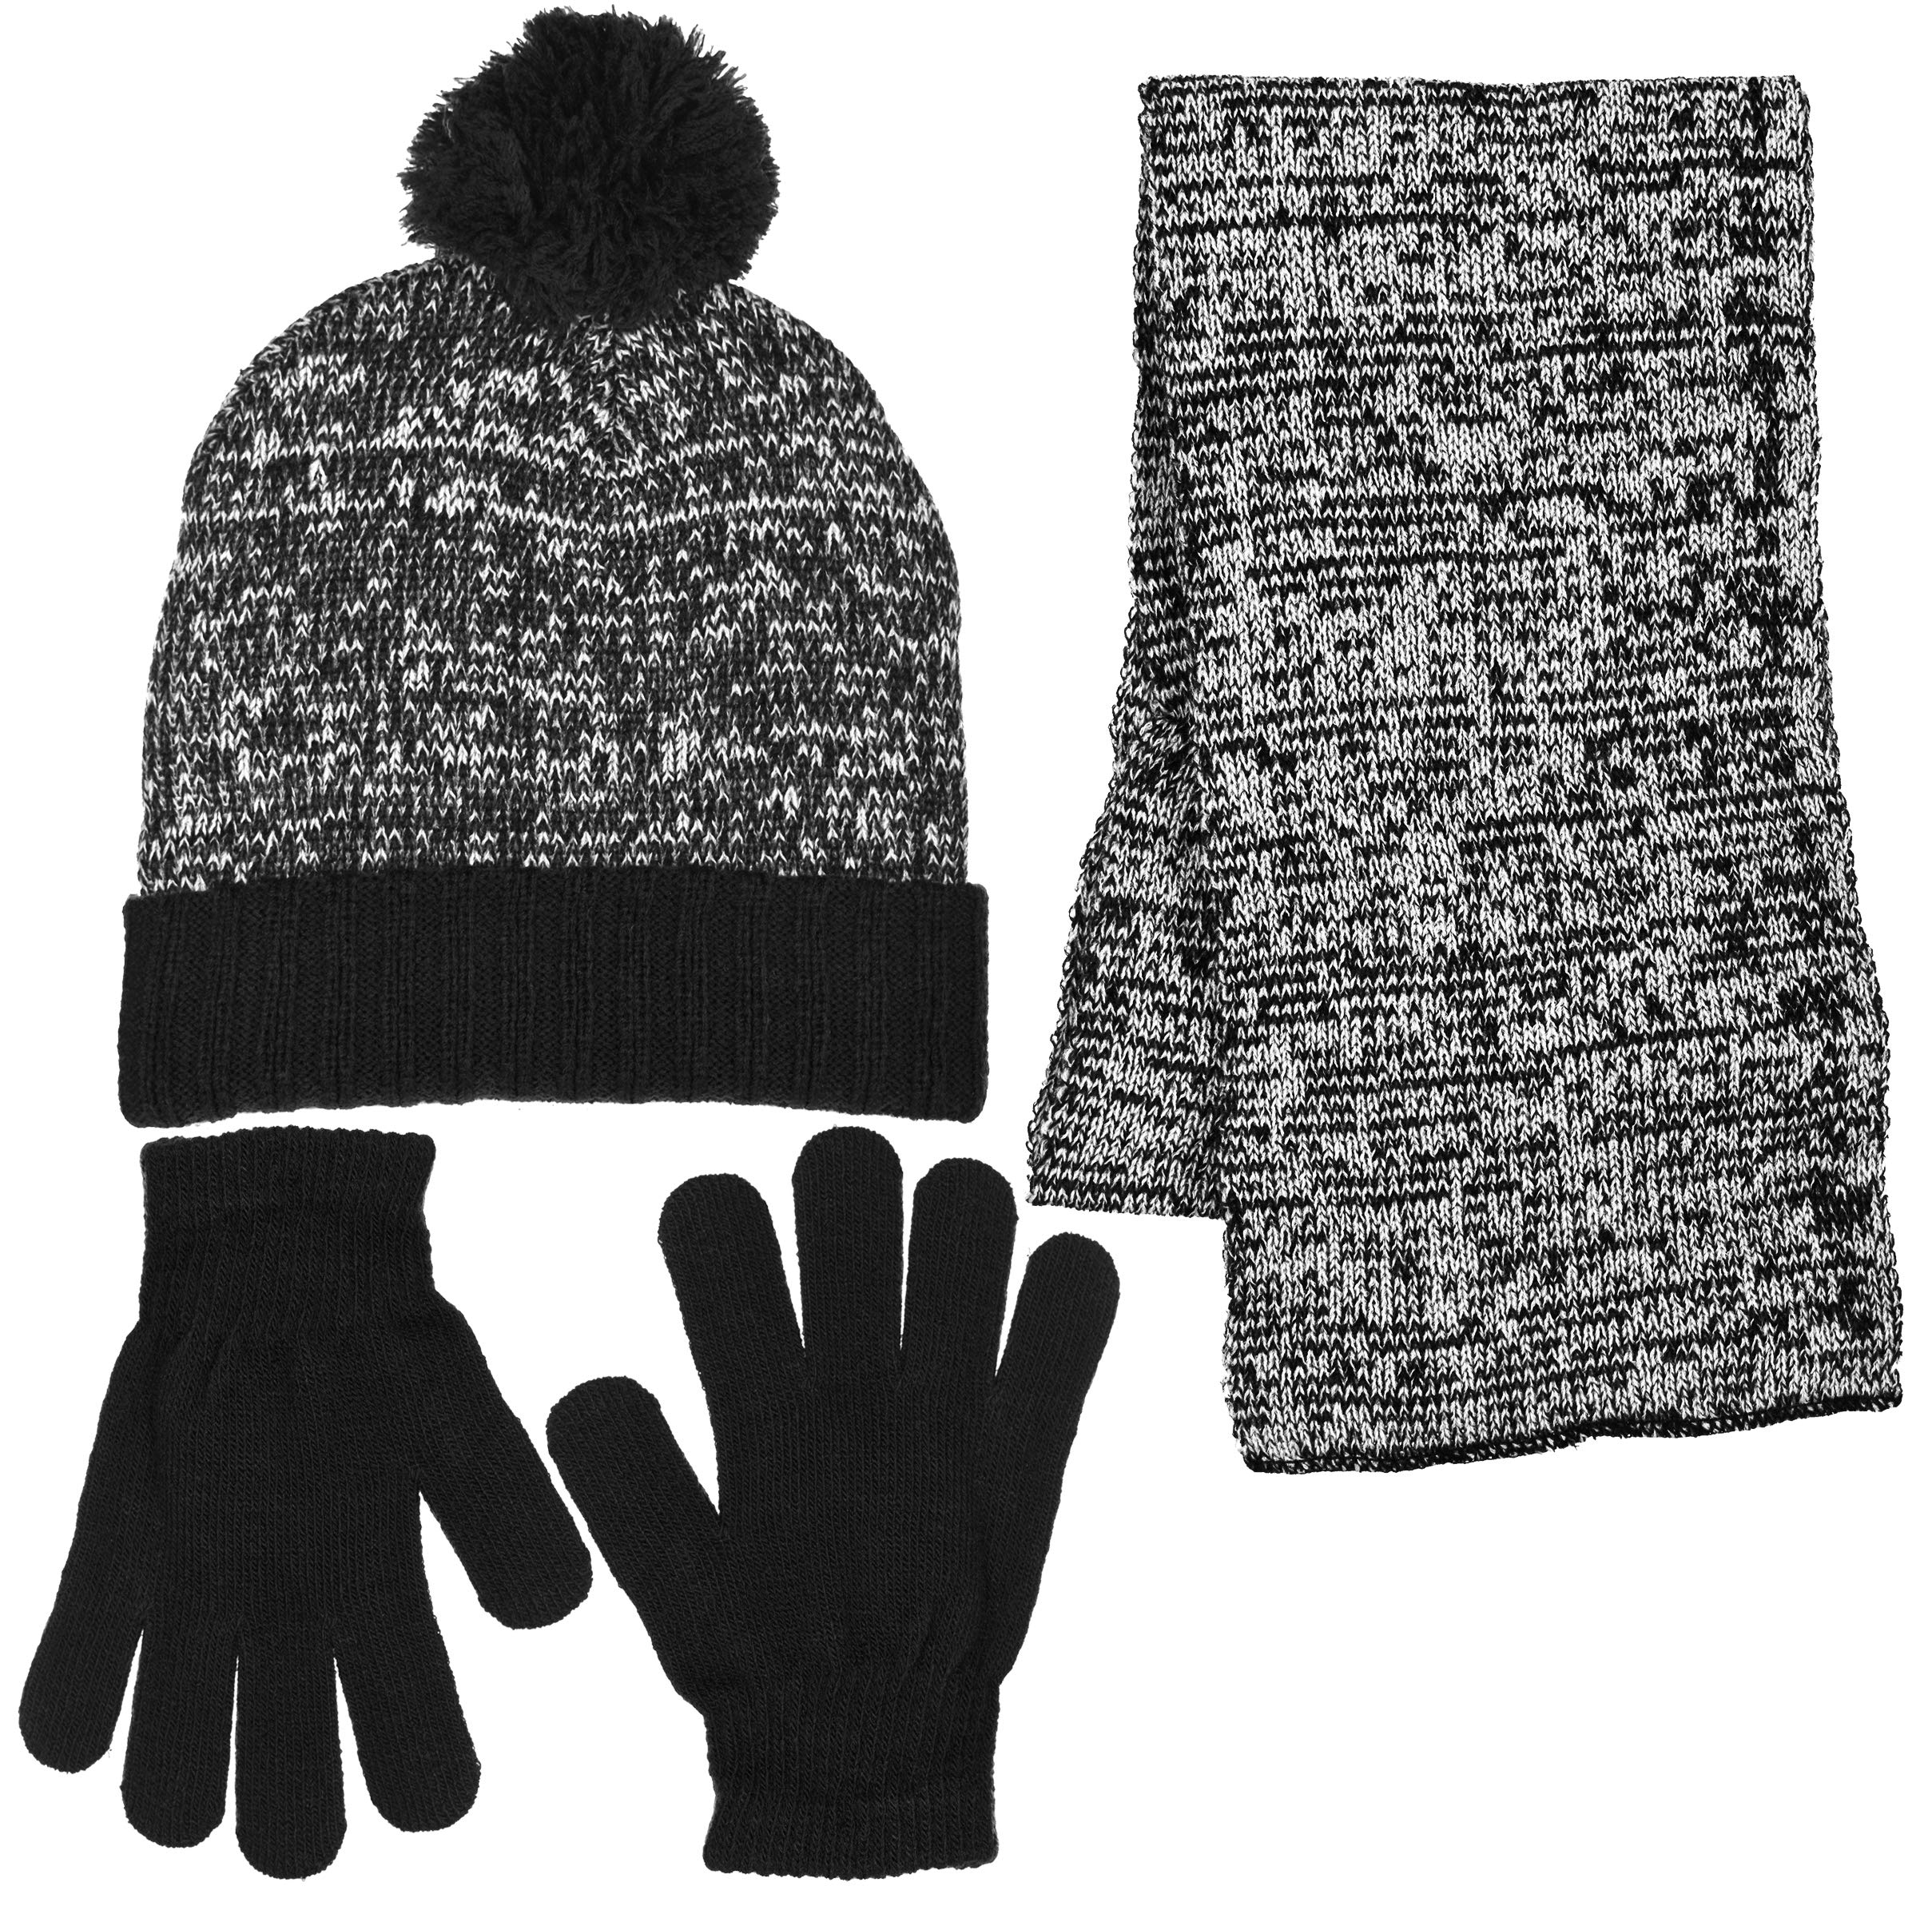 Boys 3 Piece Marled Pattern Knit Cuffed Pom Beanie Scarf & Gloves Set 3 Colors (Black)